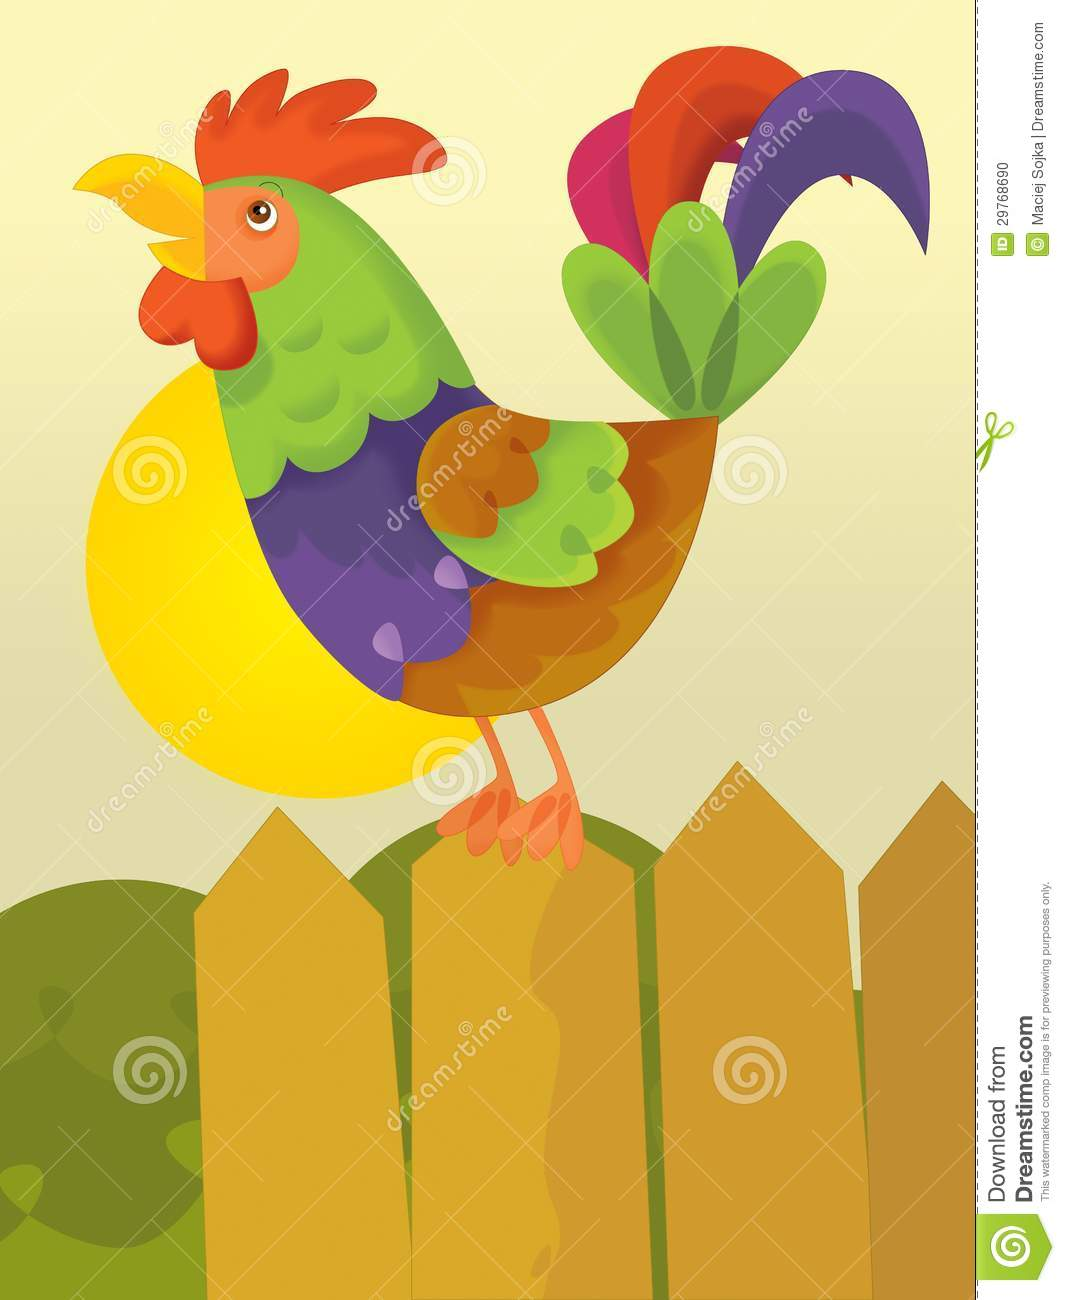 Cute Rooster Clipart  Rooster Crowing Clipart  Rooster Clipart